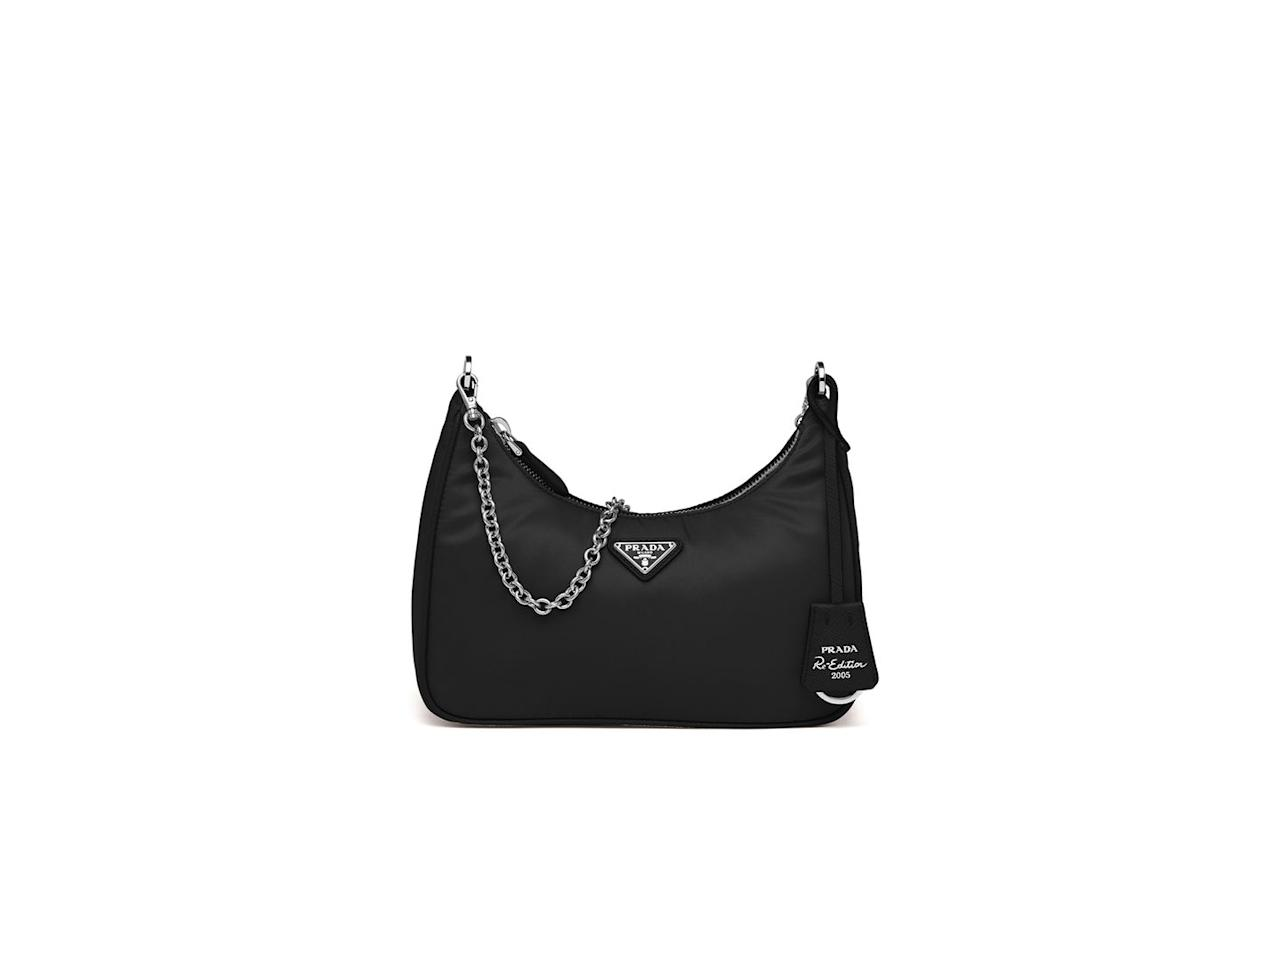 "<p><a class=""body-btn-link"" href=""https://www.prada.com/gb/en/women/bags/shoulder_bags/products.prada_re-edition_2005_nylon_shoulder_bag.1BH204_064_F0002_V_V1L.html"" target=""_blank"">SHOP NOW</a> </p><p>Prada's re-edition of its well-known 2005 accessory is this season's 'It' bag for influencers everywhere. It comes in a wide range of colours, but we love the classic black.</p><p>Re-edition 2005 nylon bag, £895, <a href=""https://www.prada.com/gb/en/women/bags/shoulder_bags/products.prada_re-edition_2005_nylon_shoulder_bag.1BH204_064_F0002_V_V1L.html"" target=""_blank"">Prada</a></p>"